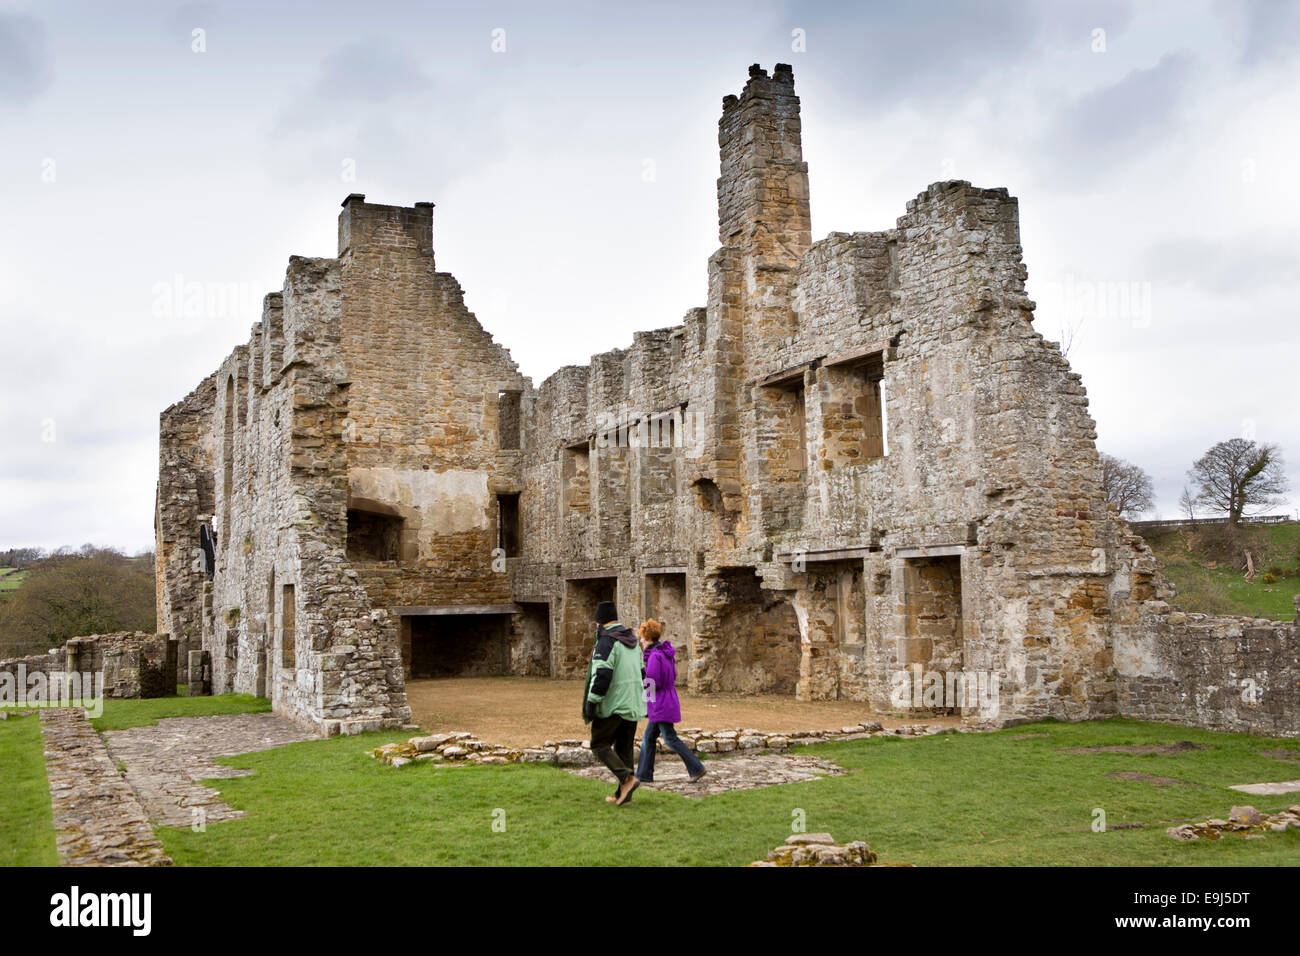 UK, Country Durham, Barnard Castle, Eggleston Abbey, visitors in ruins of monastery accommodation - Stock Image